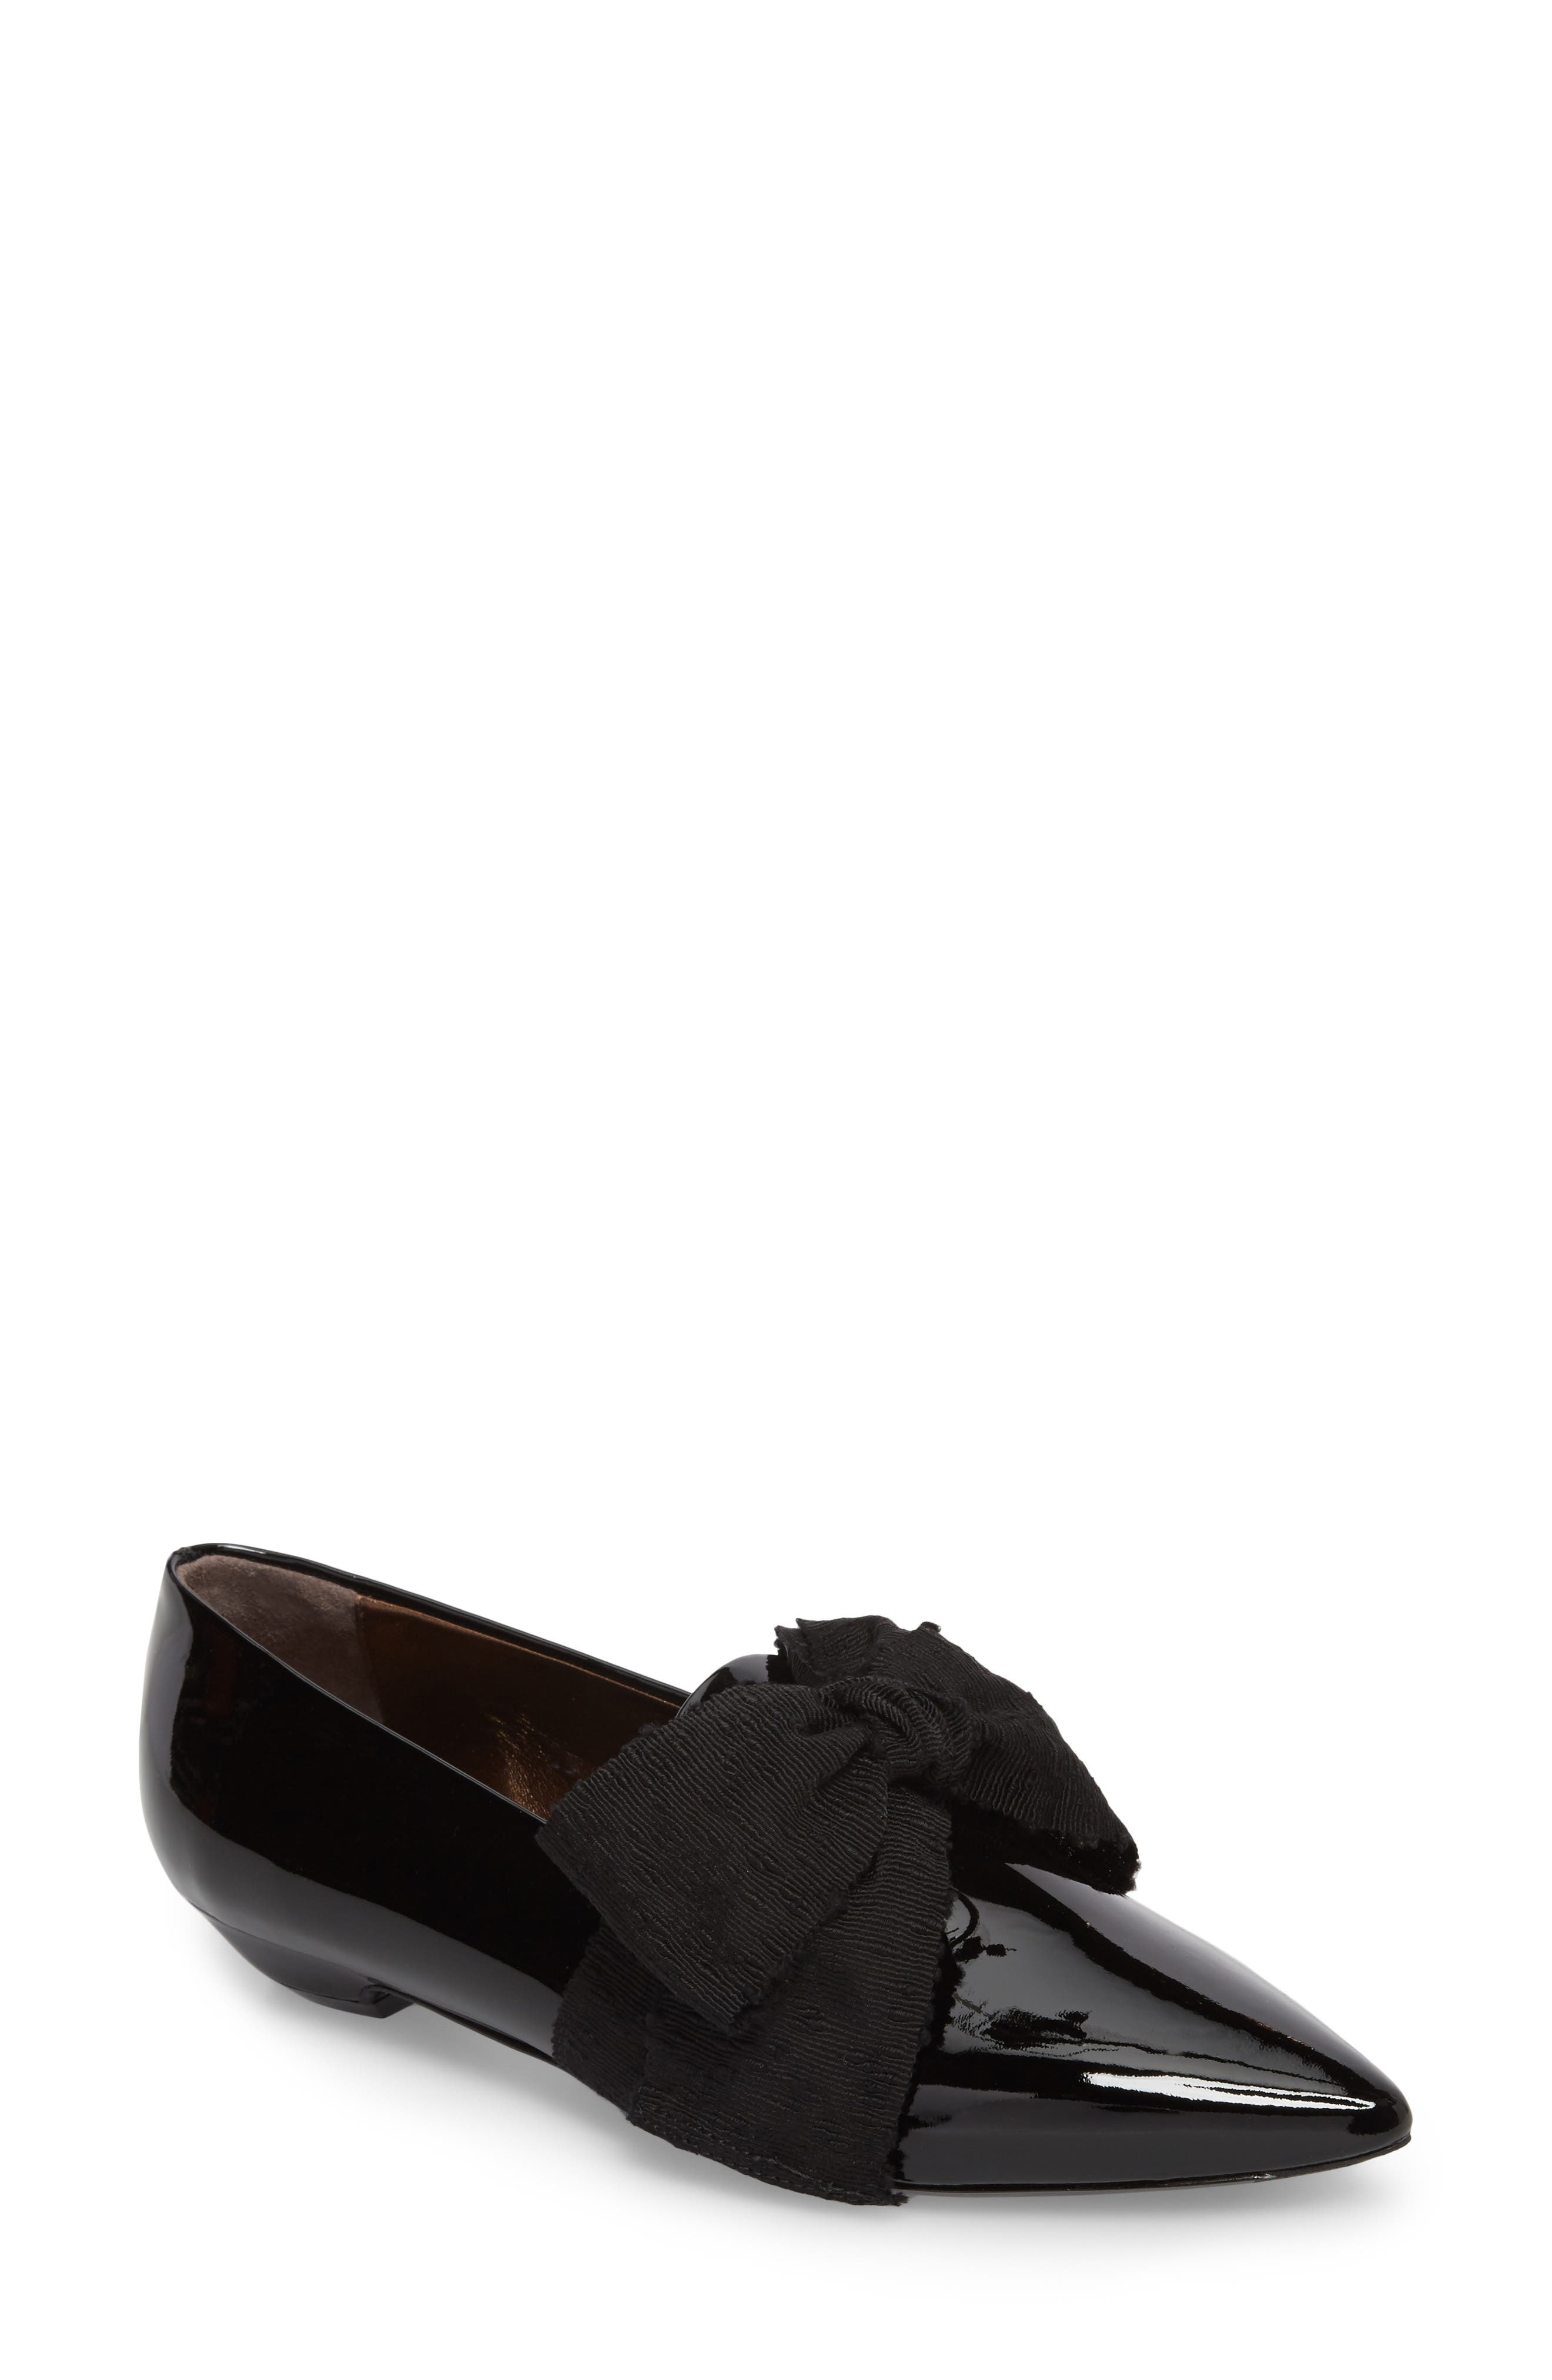 Maggie Bow Loafer,                             Main thumbnail 1, color,                             001